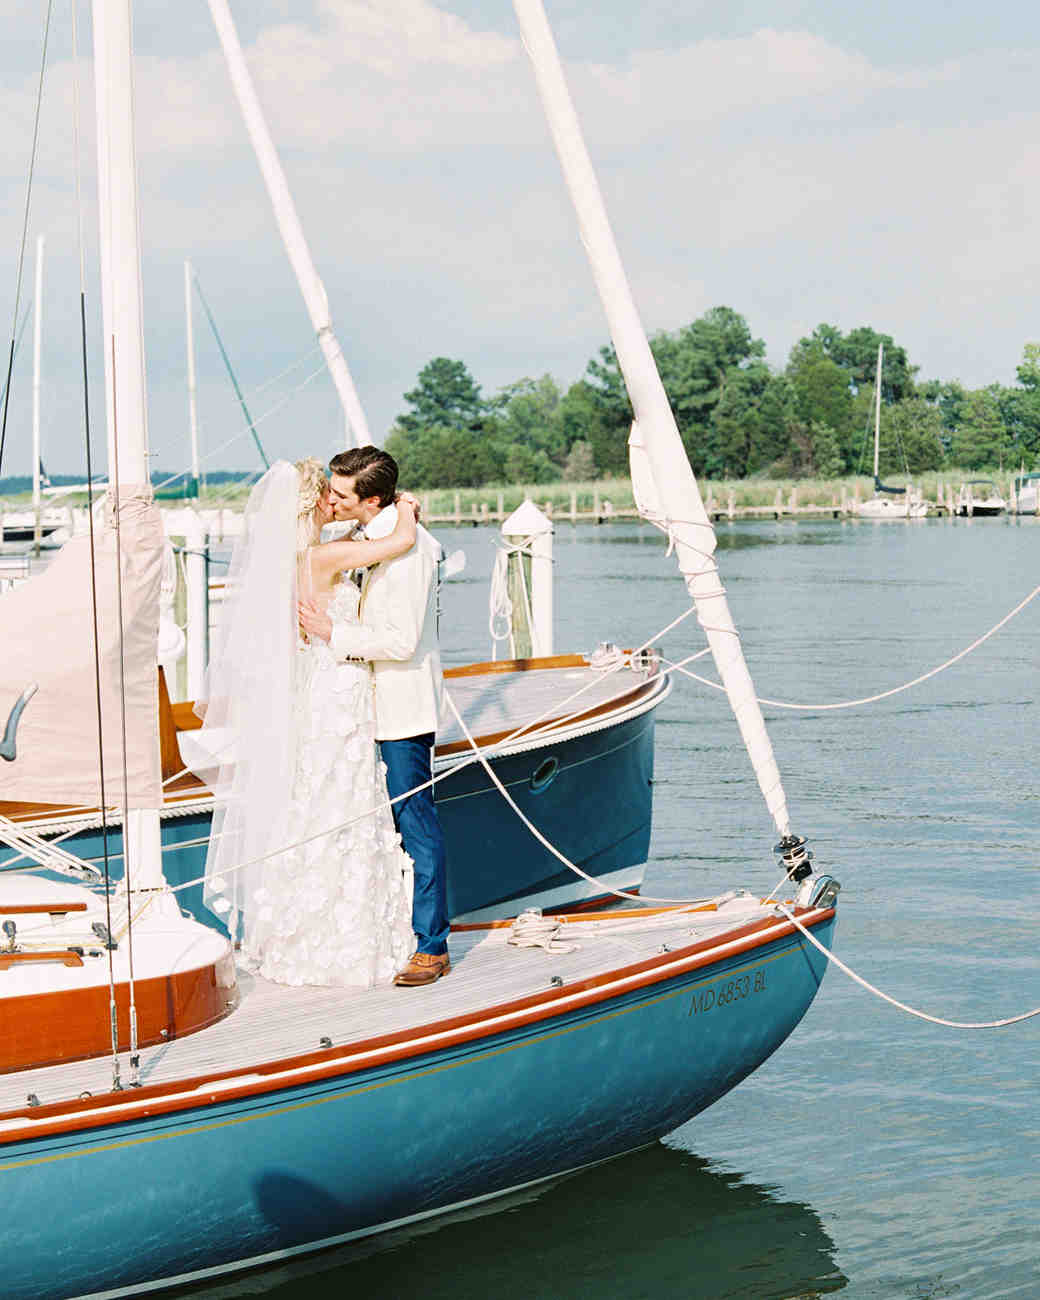 stephanie philip wedding maryland bride groom portrait sailboat